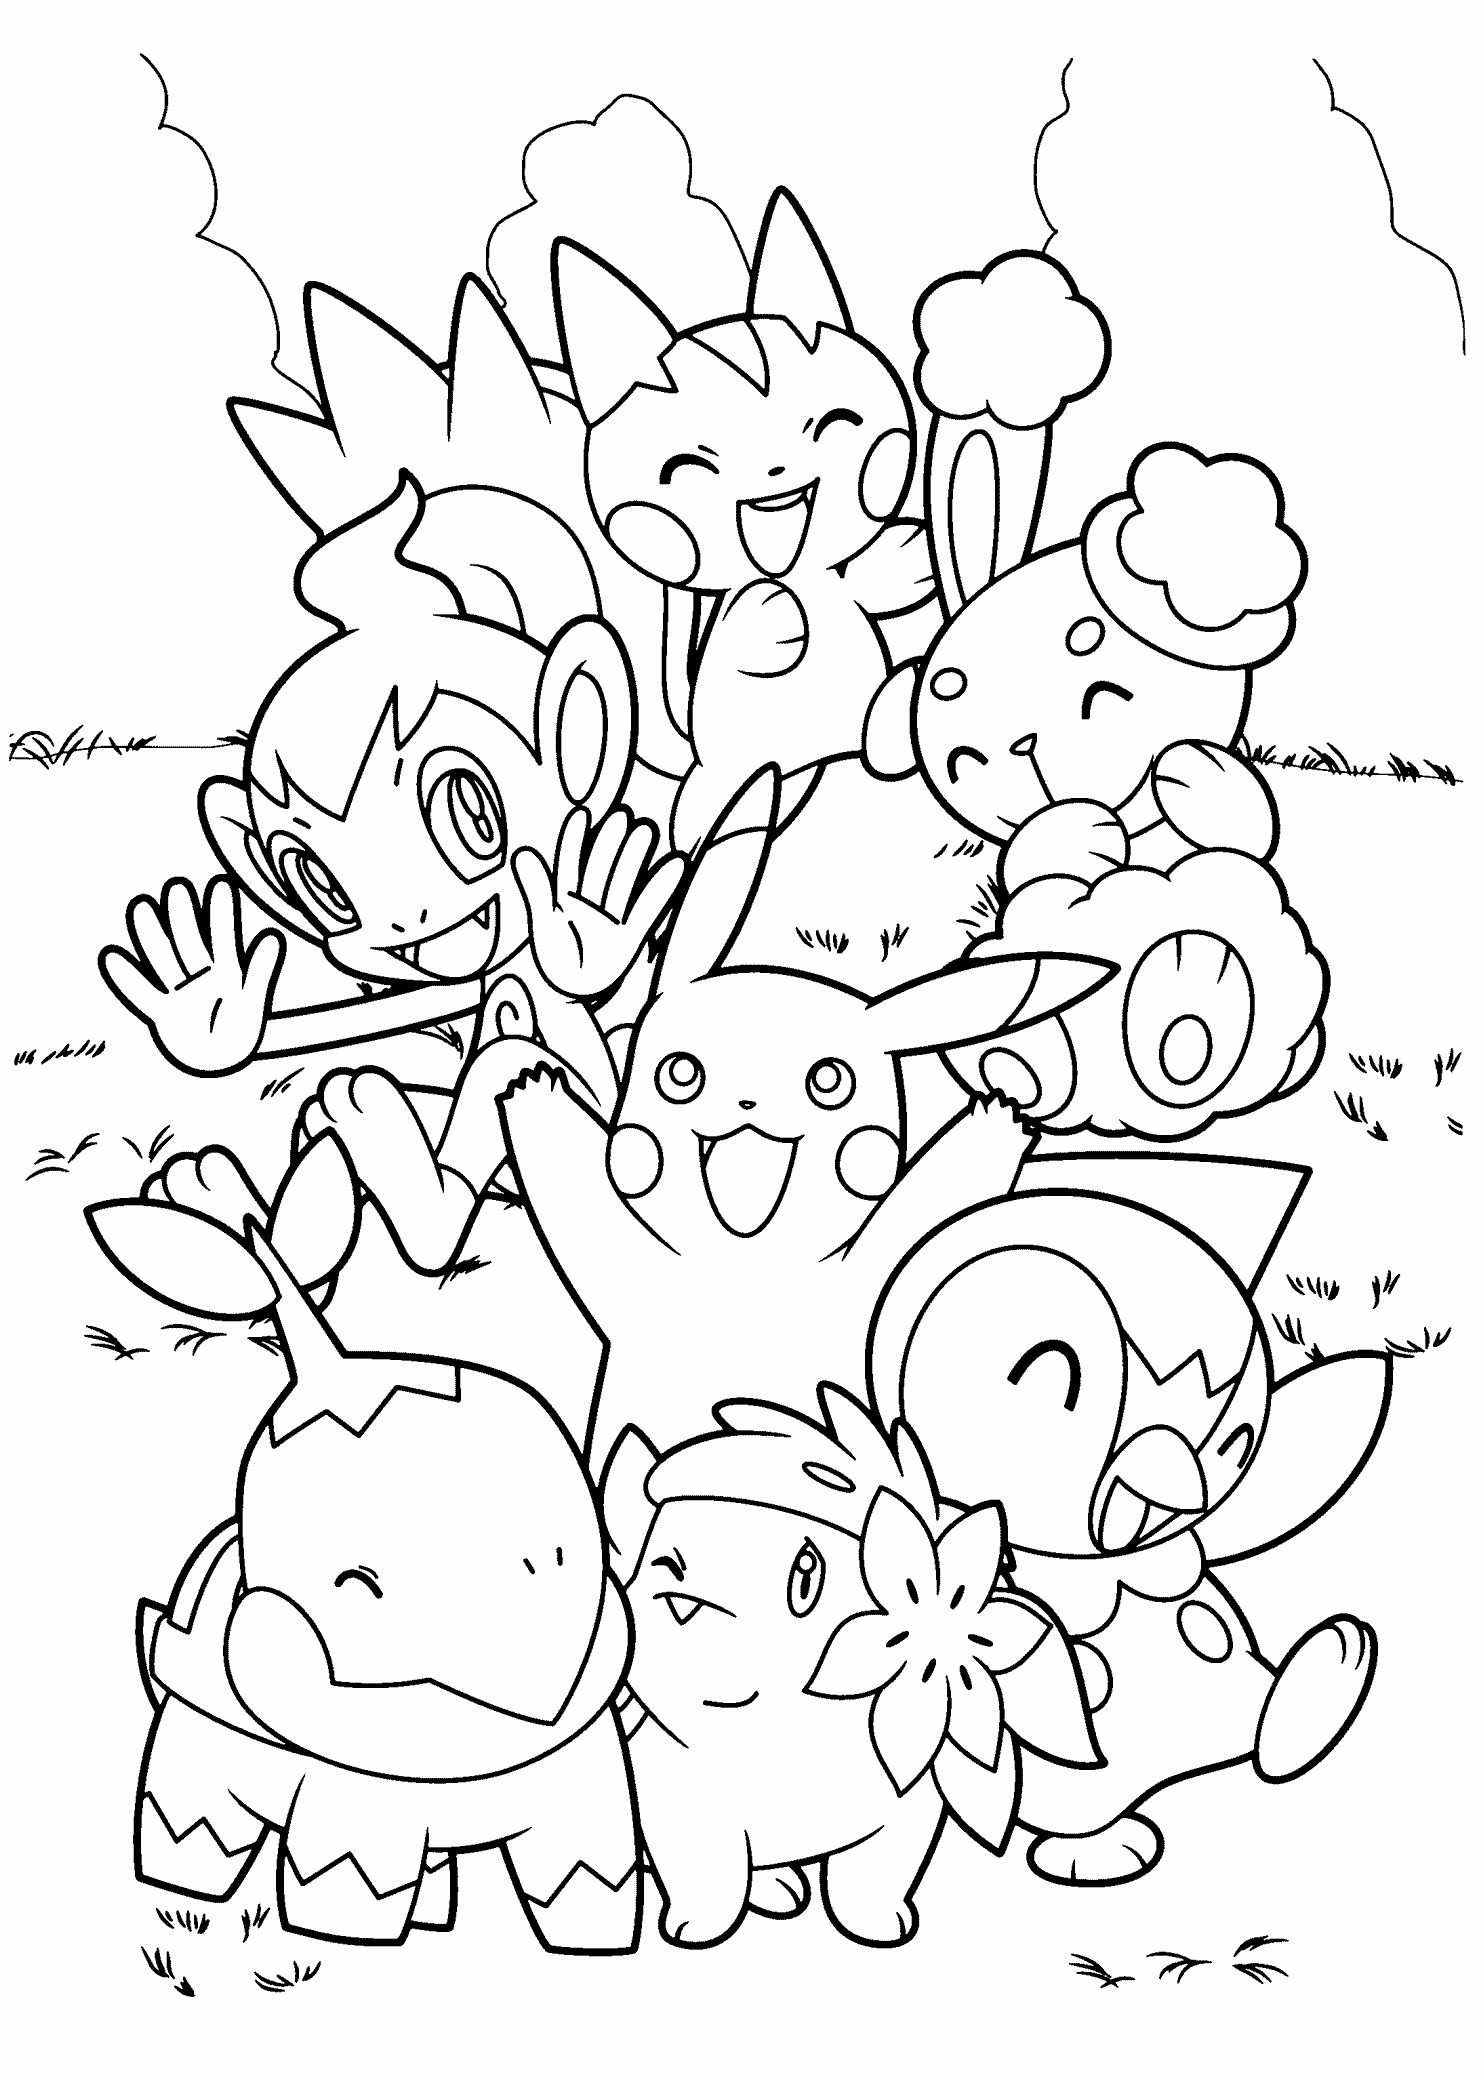 27 Inspiration Image Of Free Printable Pokemon Coloring Pages Entitlementtrap Com Pikachu Coloring Page Kitty Coloring Pokemon Coloring Pages